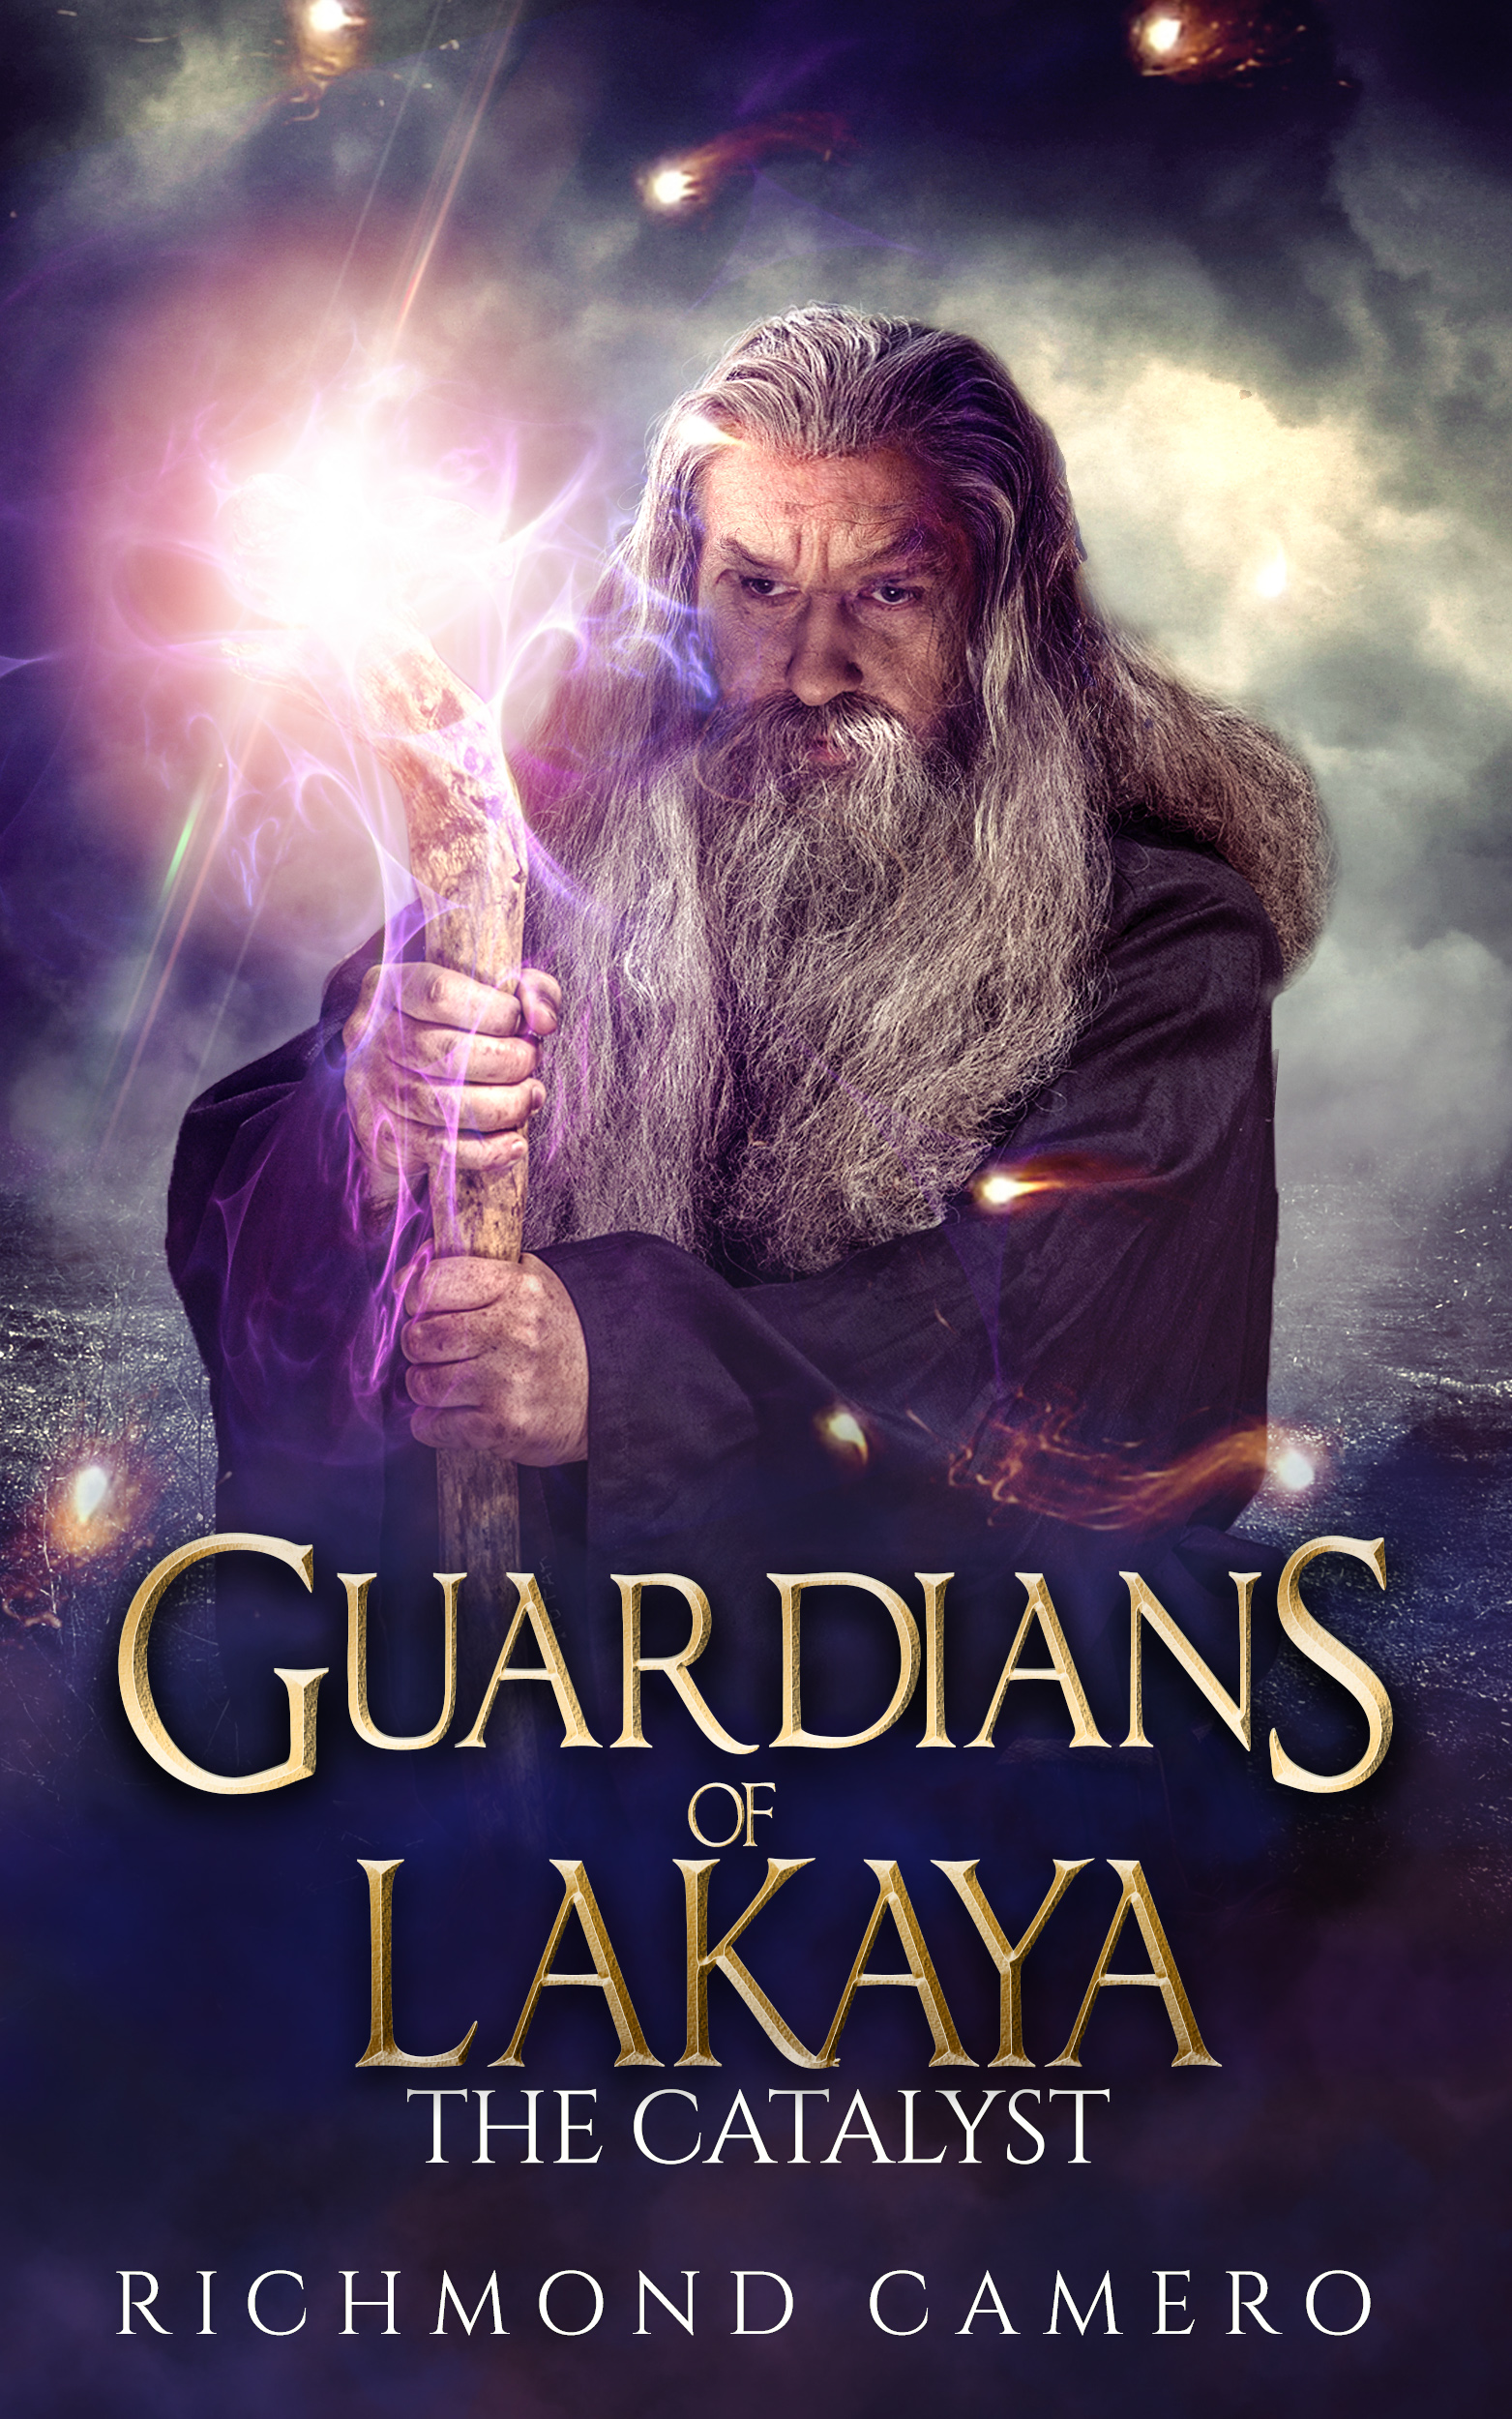 Guardians of Lakaya: The Catalyst